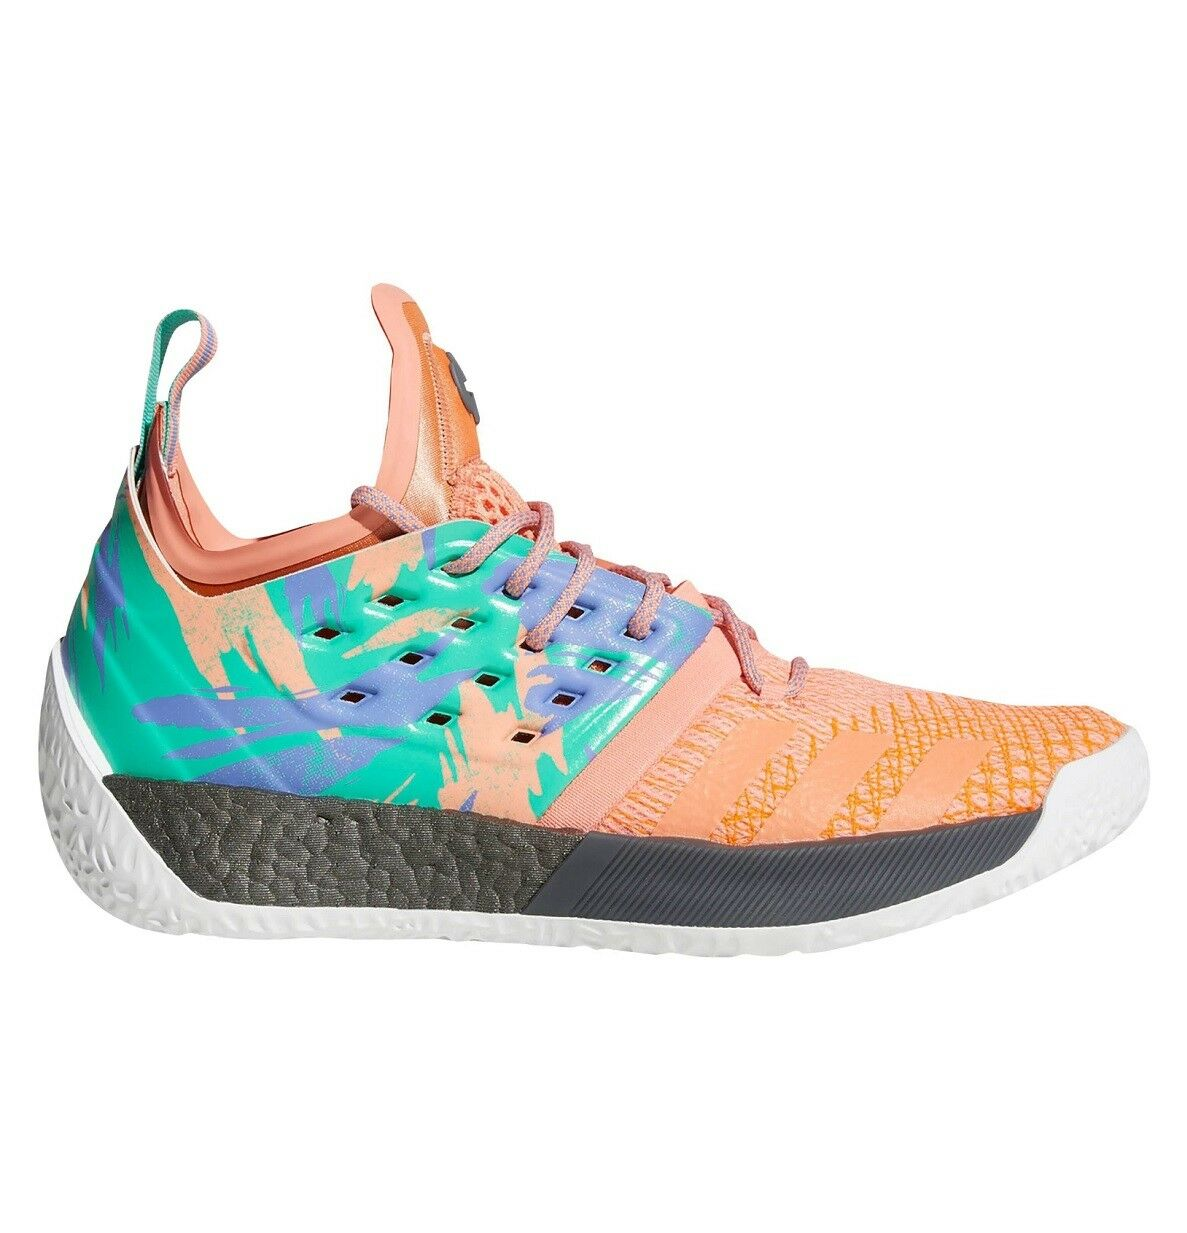 Adidas Harden Vol. 2 California Dreamin Mens AH2219 Coral Boost Shoes Size 10